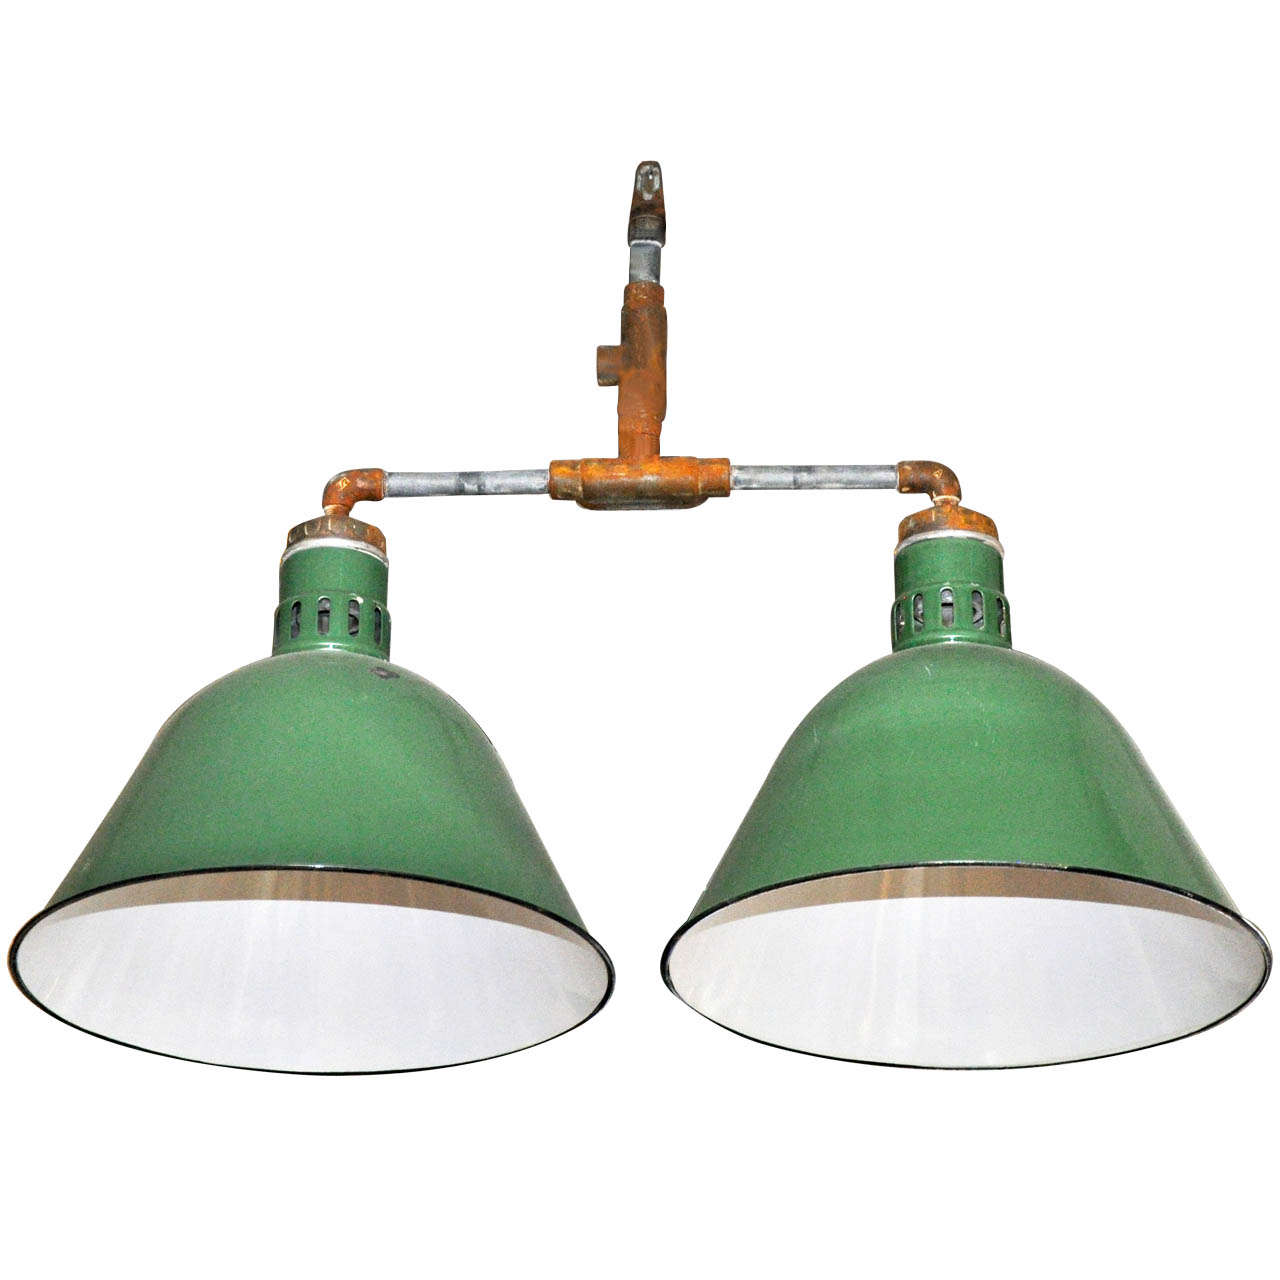 Lighting Fixtures Sale: Double Pendant Industrial Light Fixture For Sale At 1stdibs